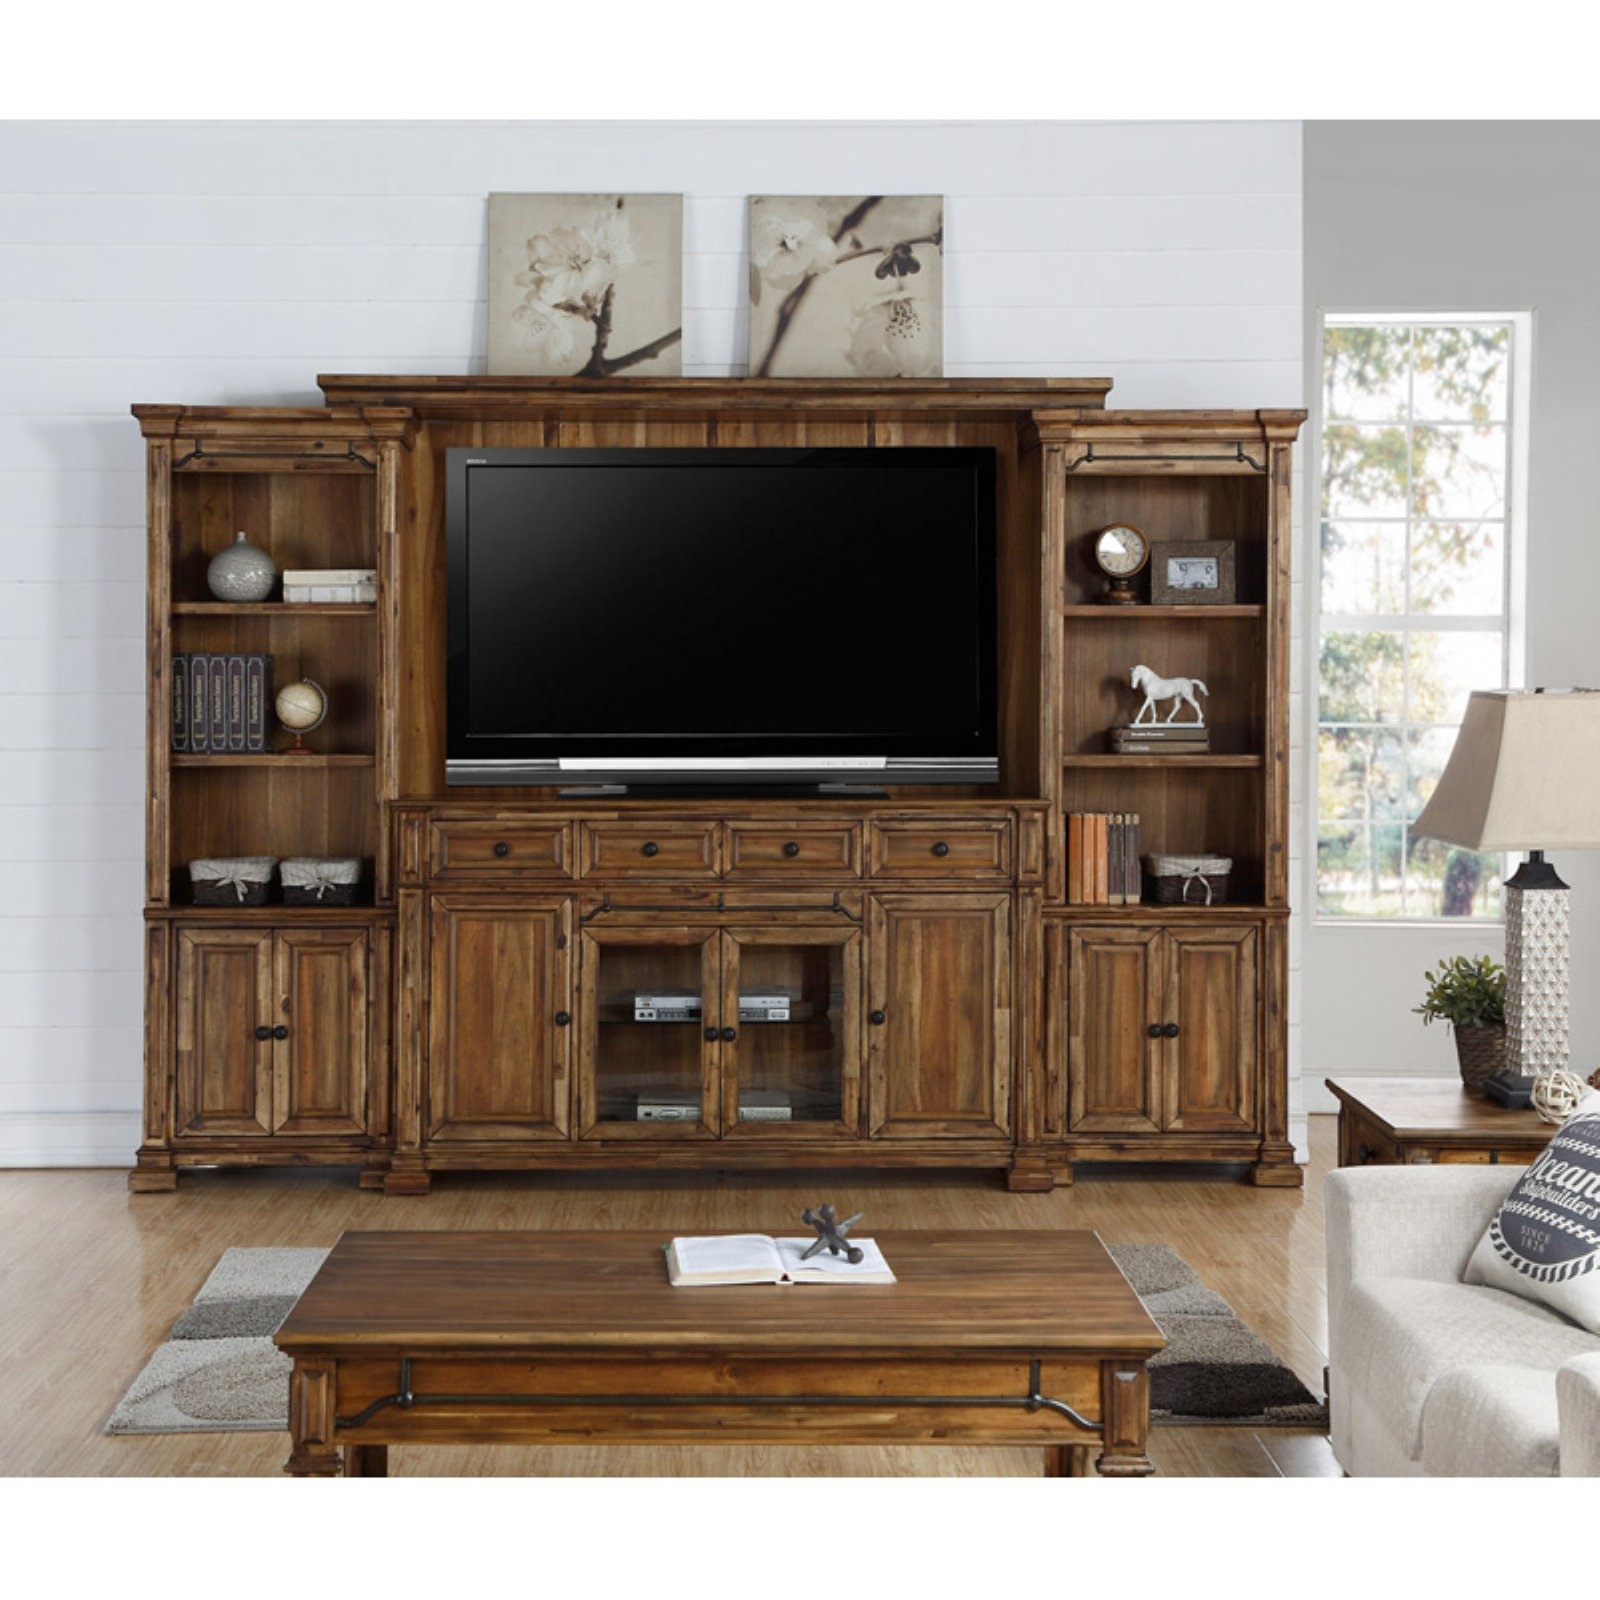 Legends Furniture Barclay Entertainment Wall Console with Optional Wall Piers and Bridge/Back Panel